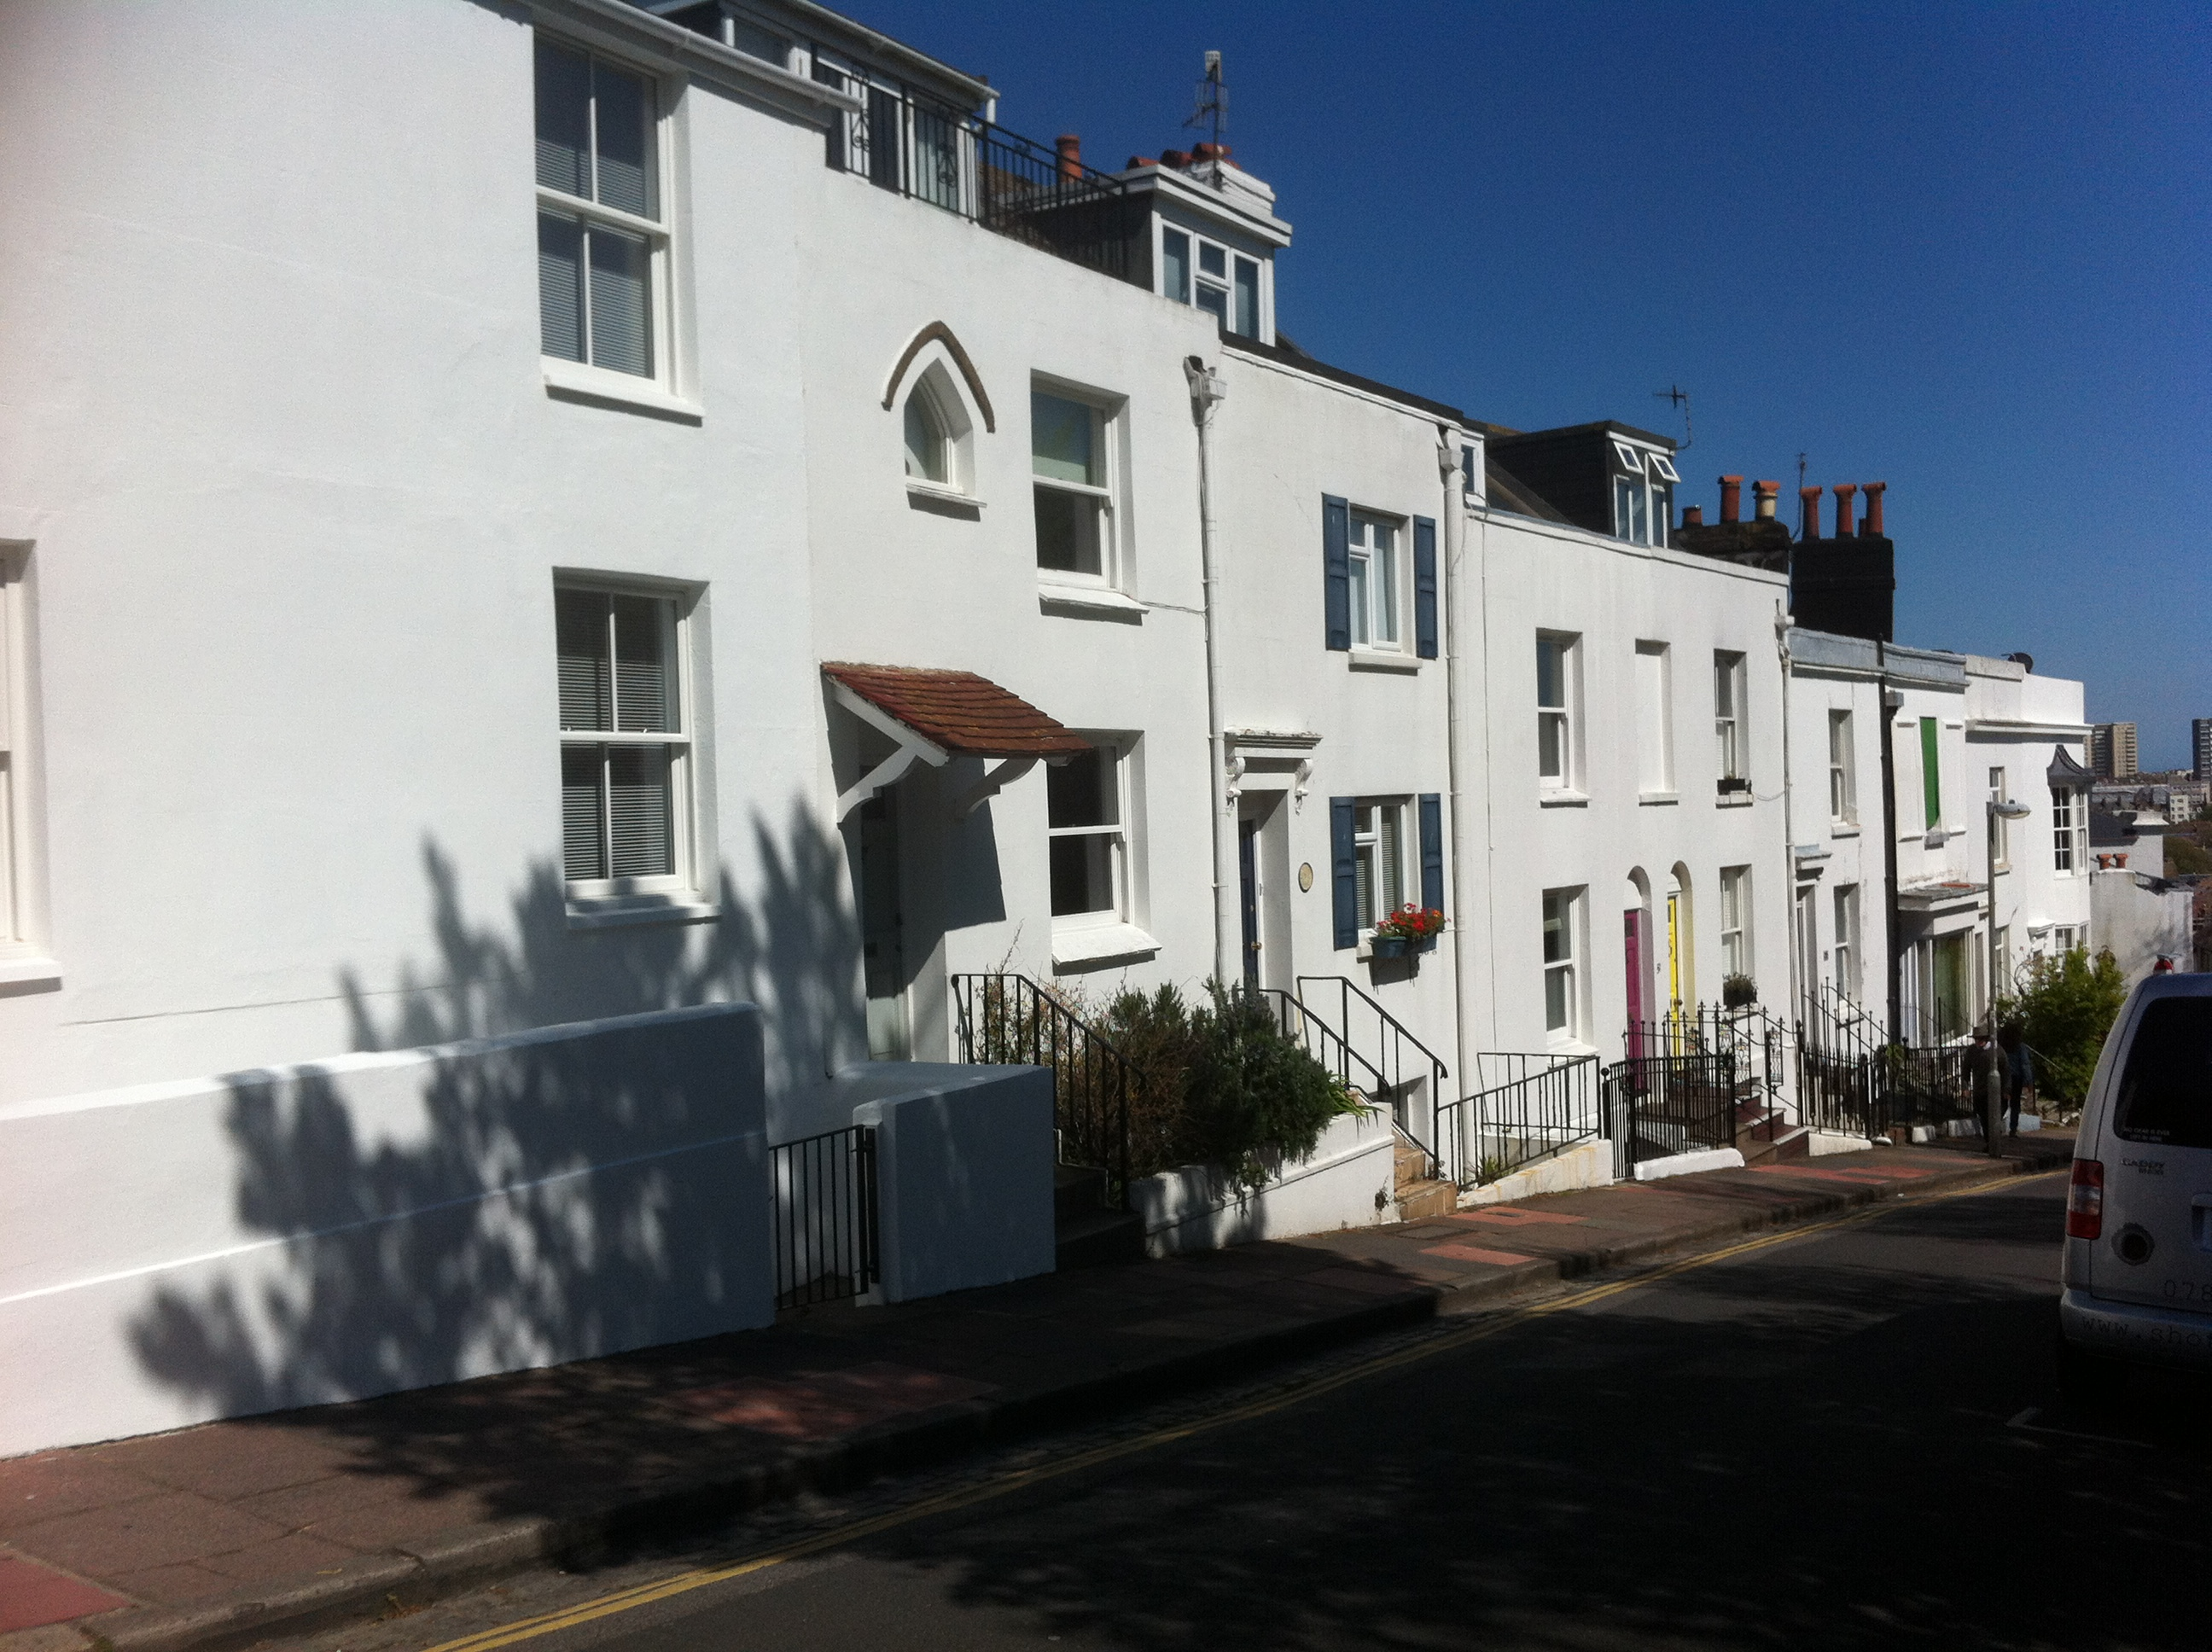 Regency-type houses in Brighton